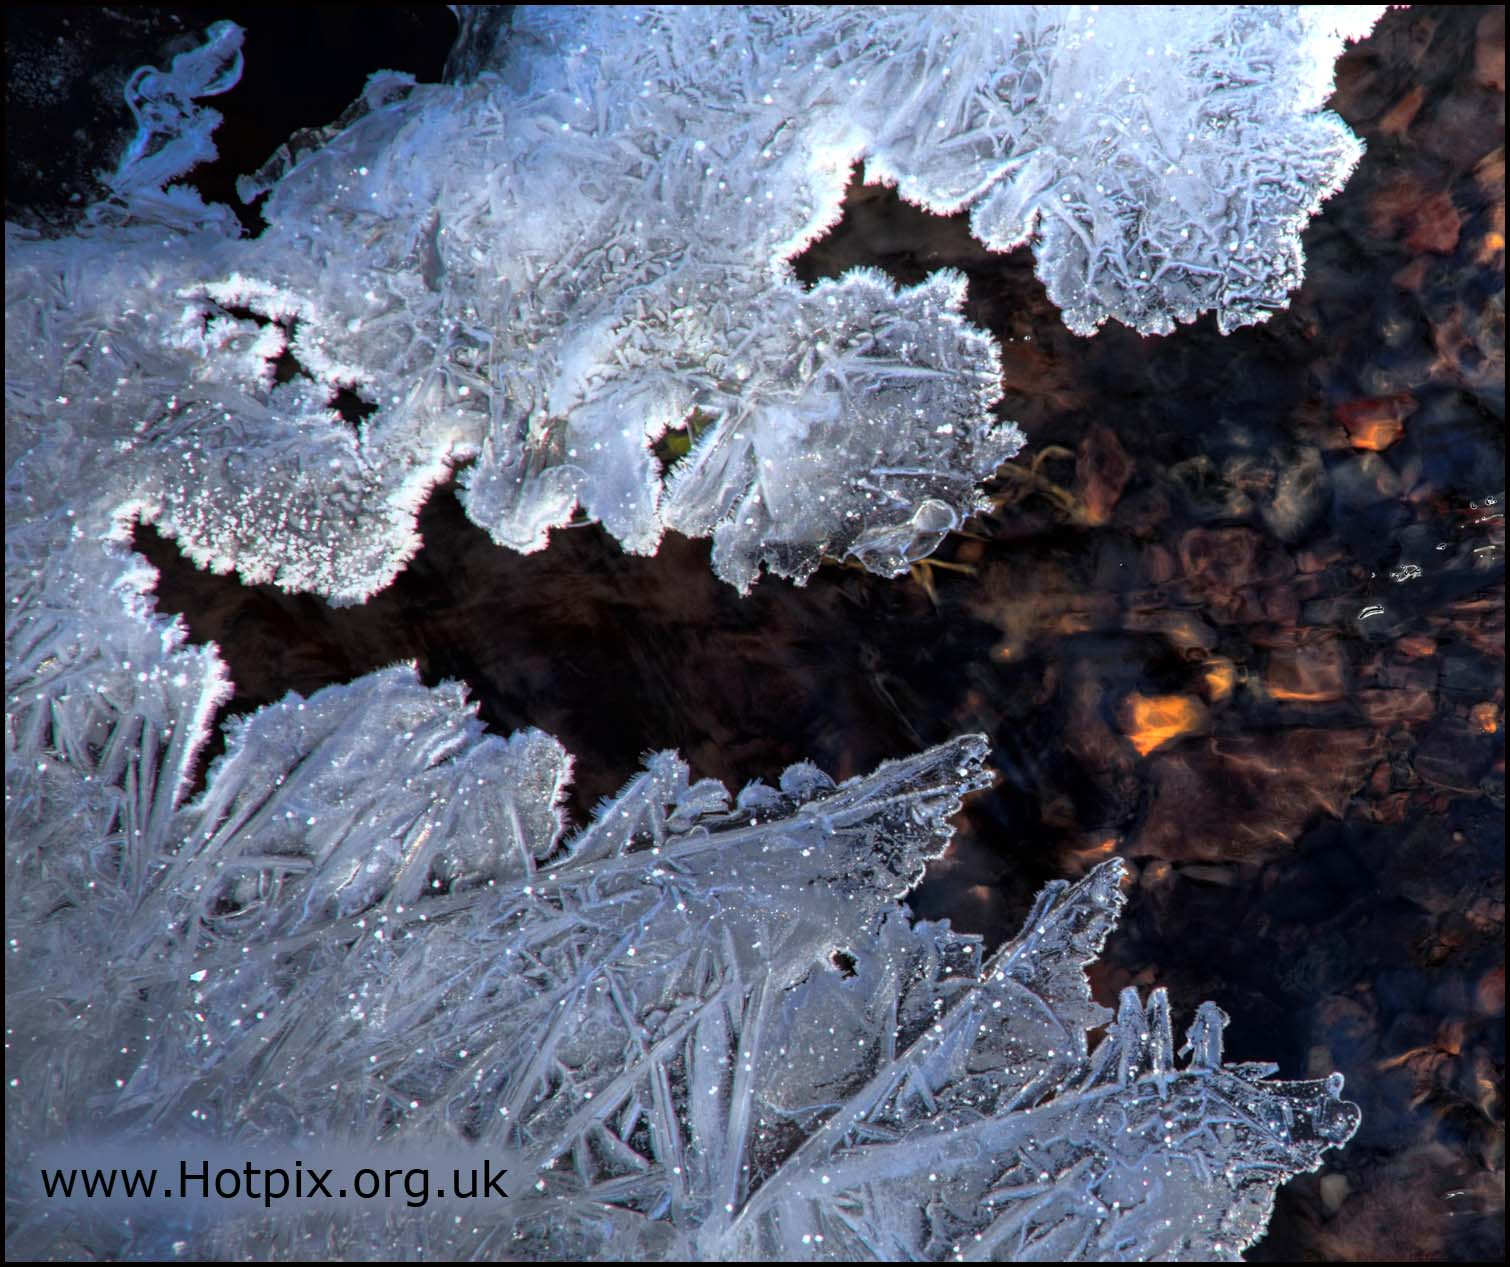 ice,winter,icicle,cold,freeze,freezing,january,britain,northwich,cheshire,uk,gb,england,white,water,river,pattern,abstract,hotpix!